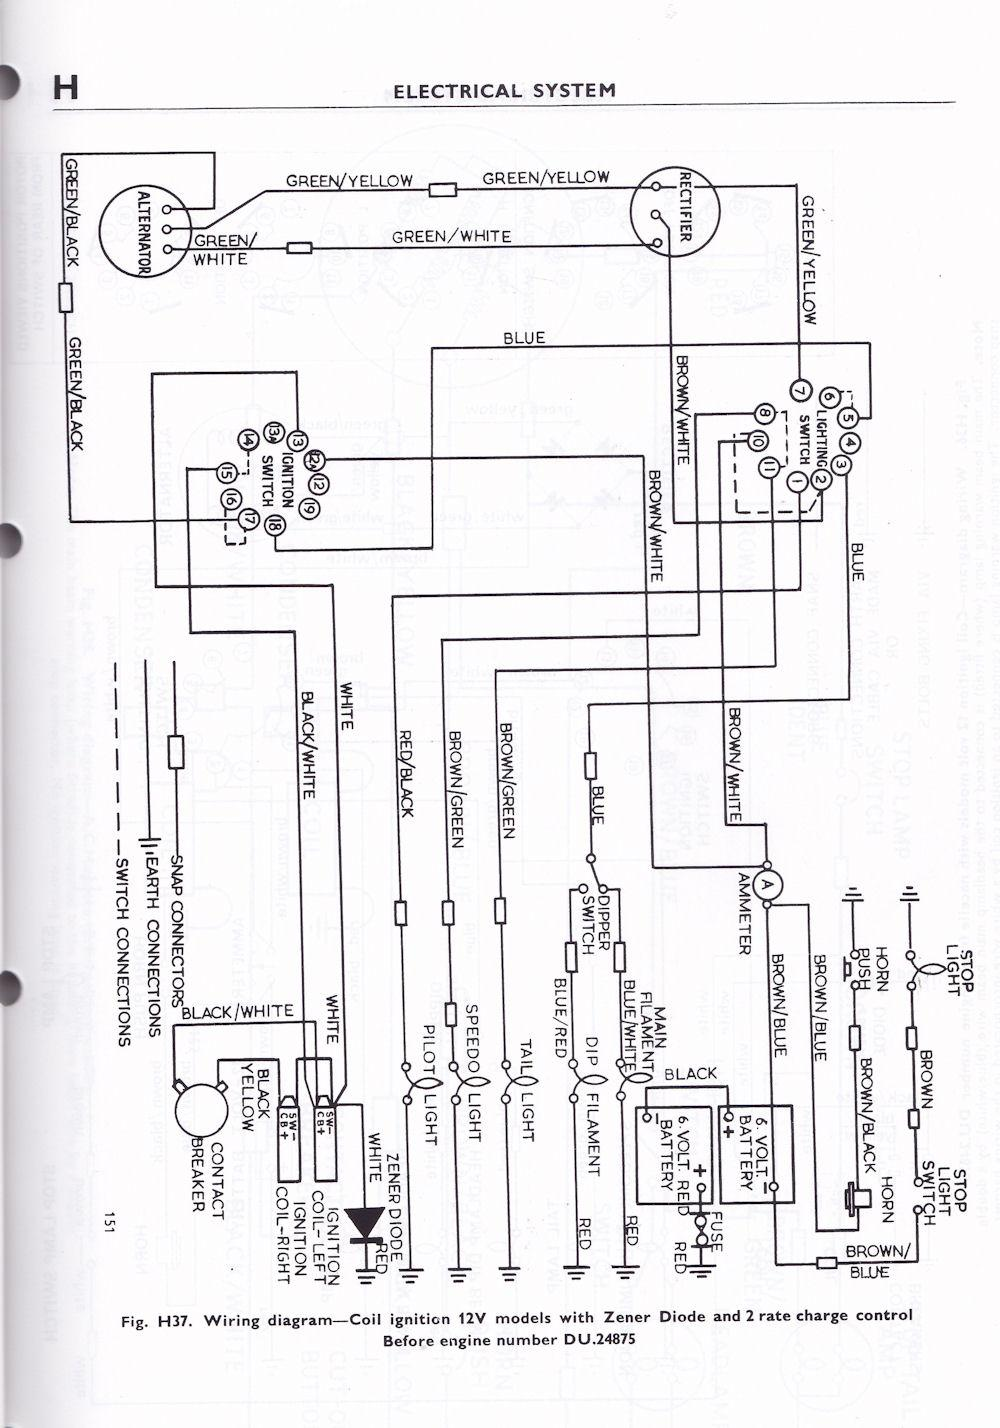 [DIAGRAM] Wiring Diagram Color Convention Motorcycle